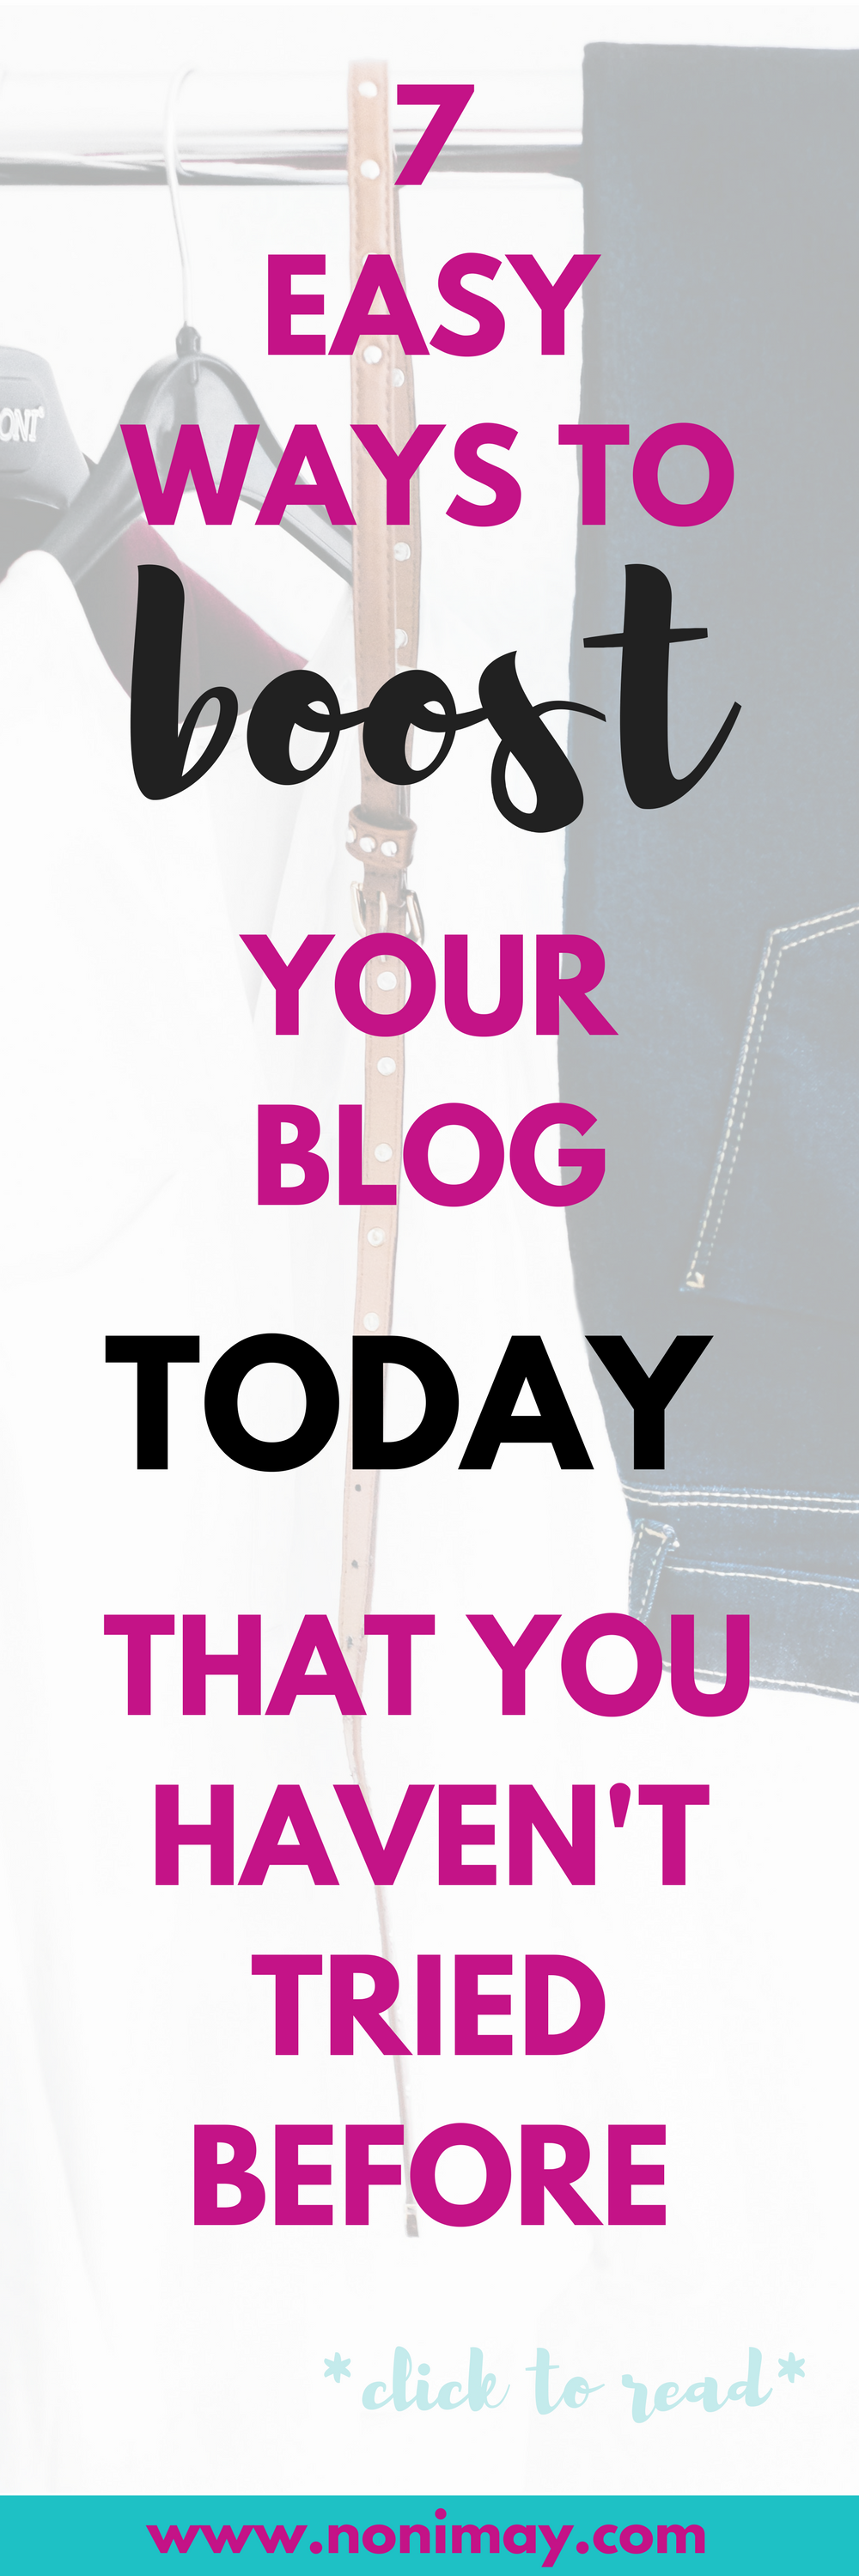 7 Ways to boost your blog